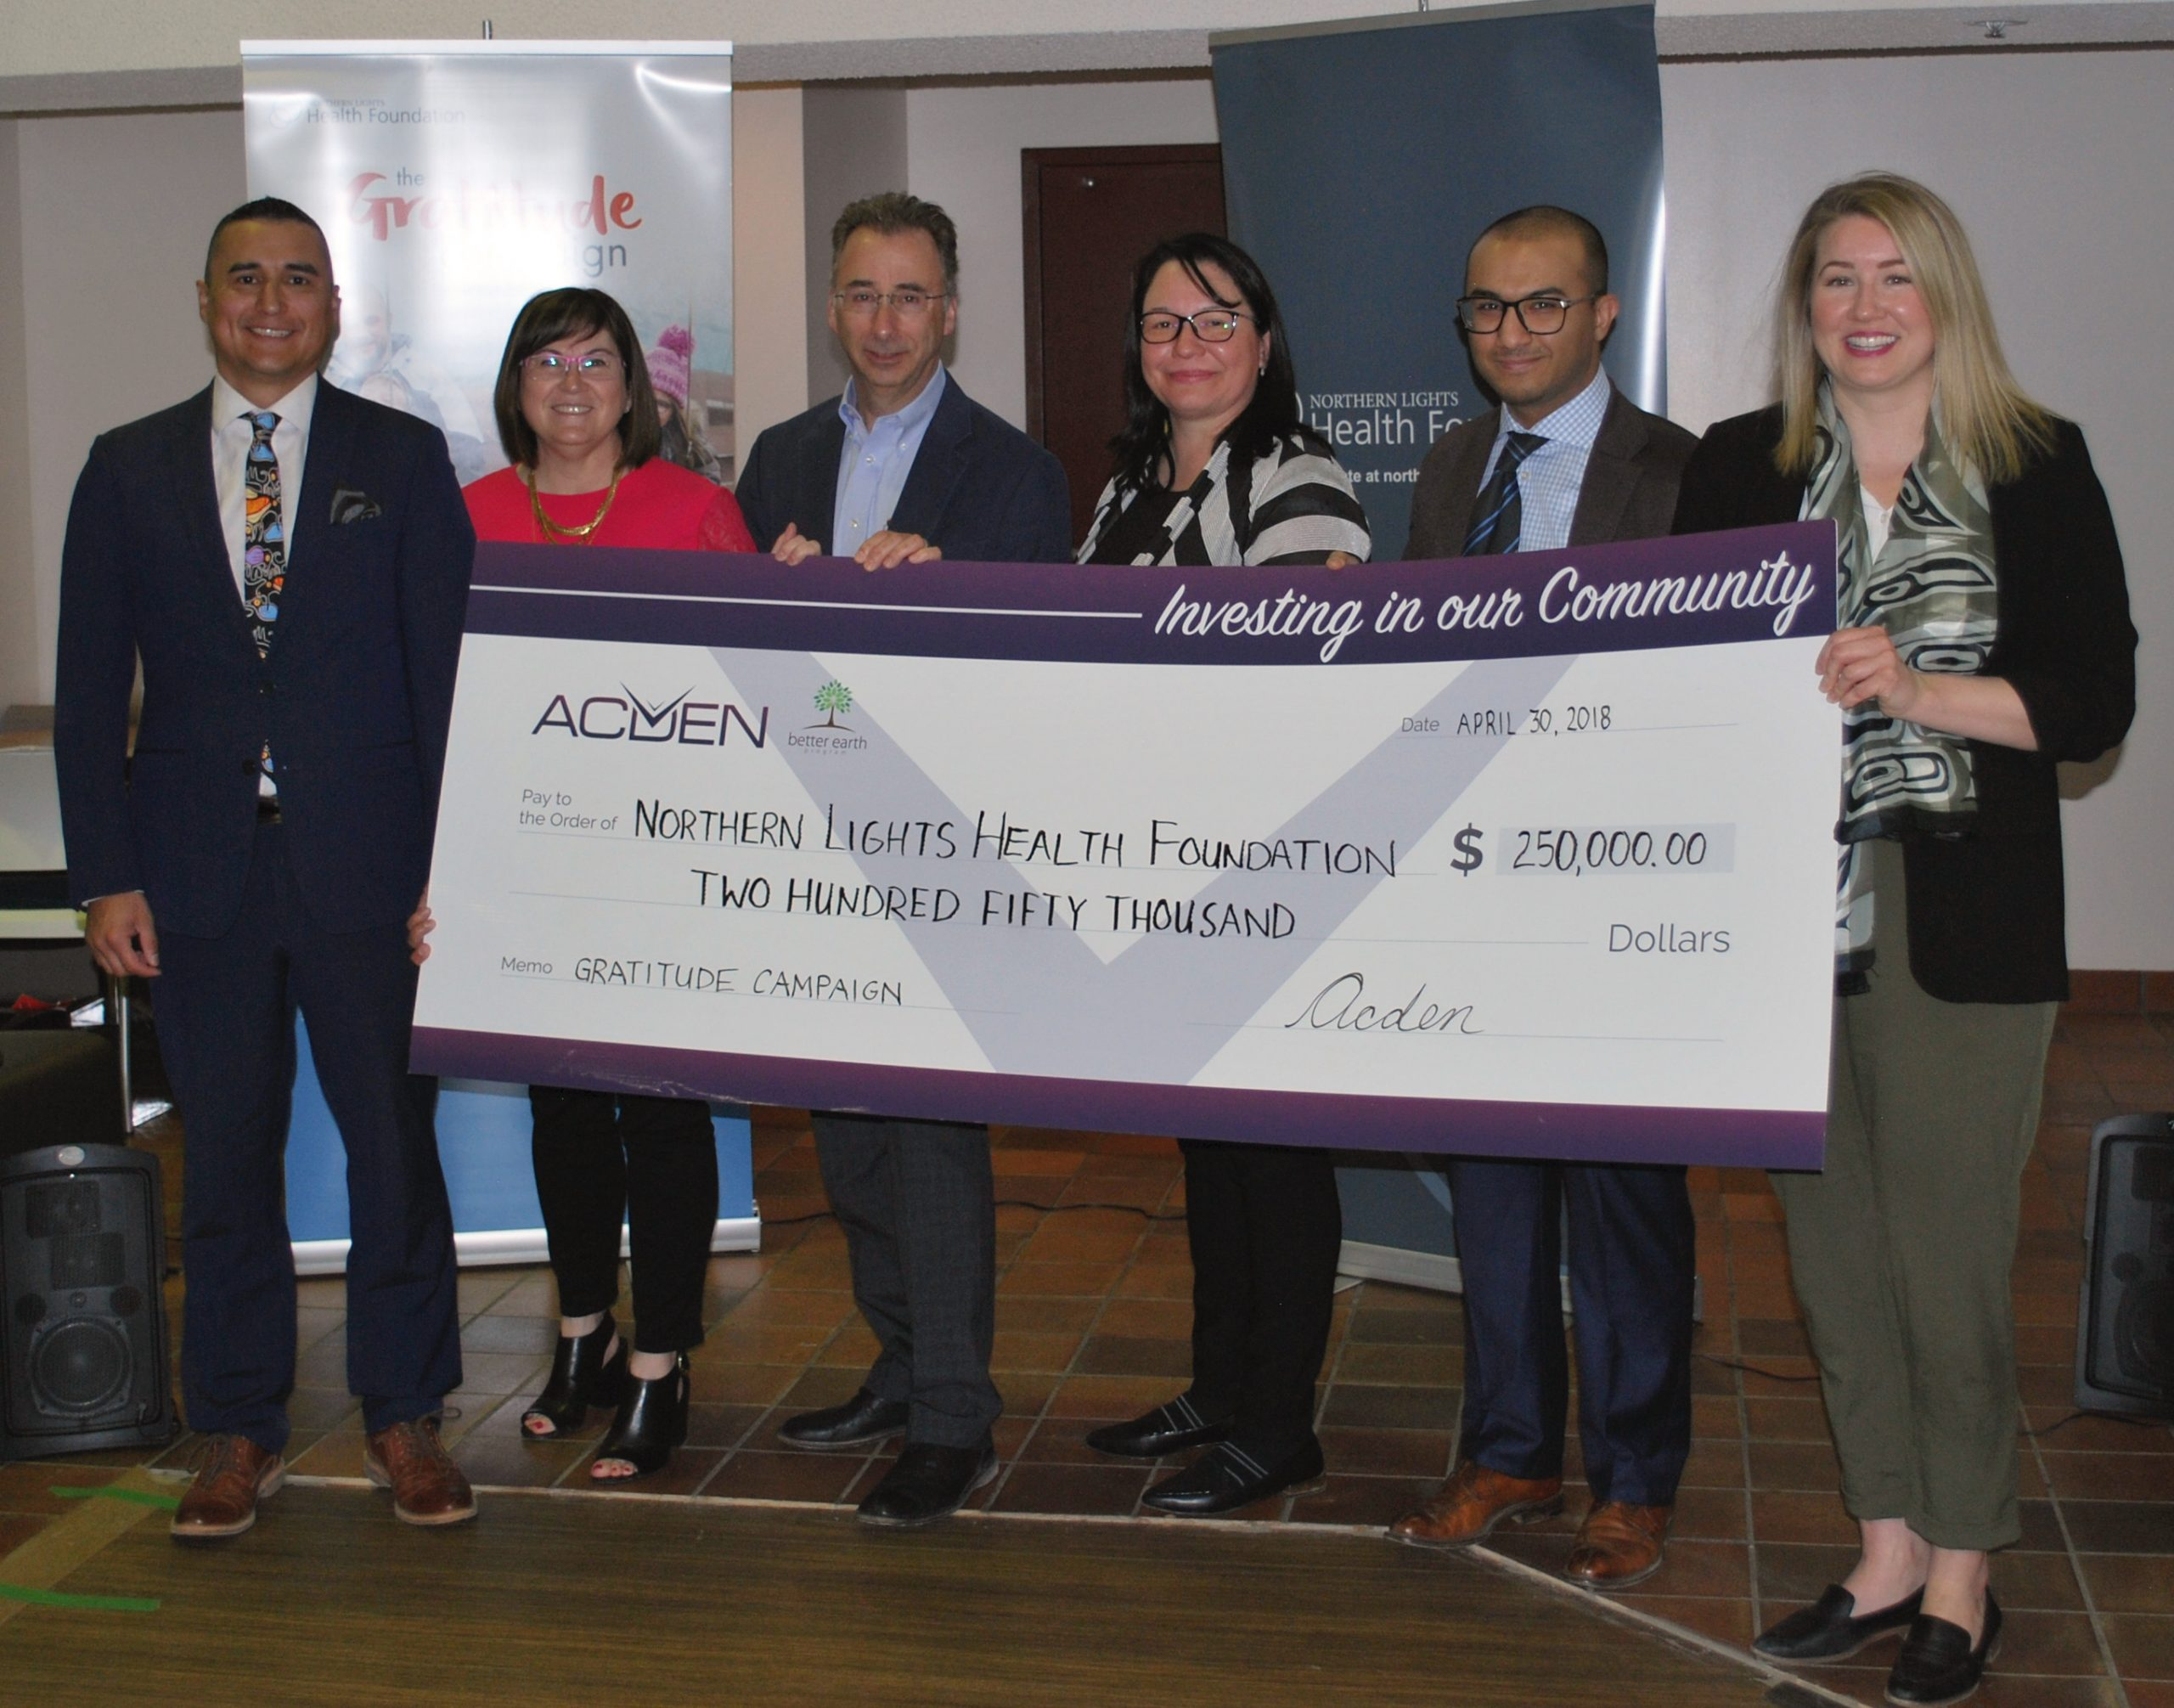 Acden Donates $250,000 To Northern Lights Health Foundation